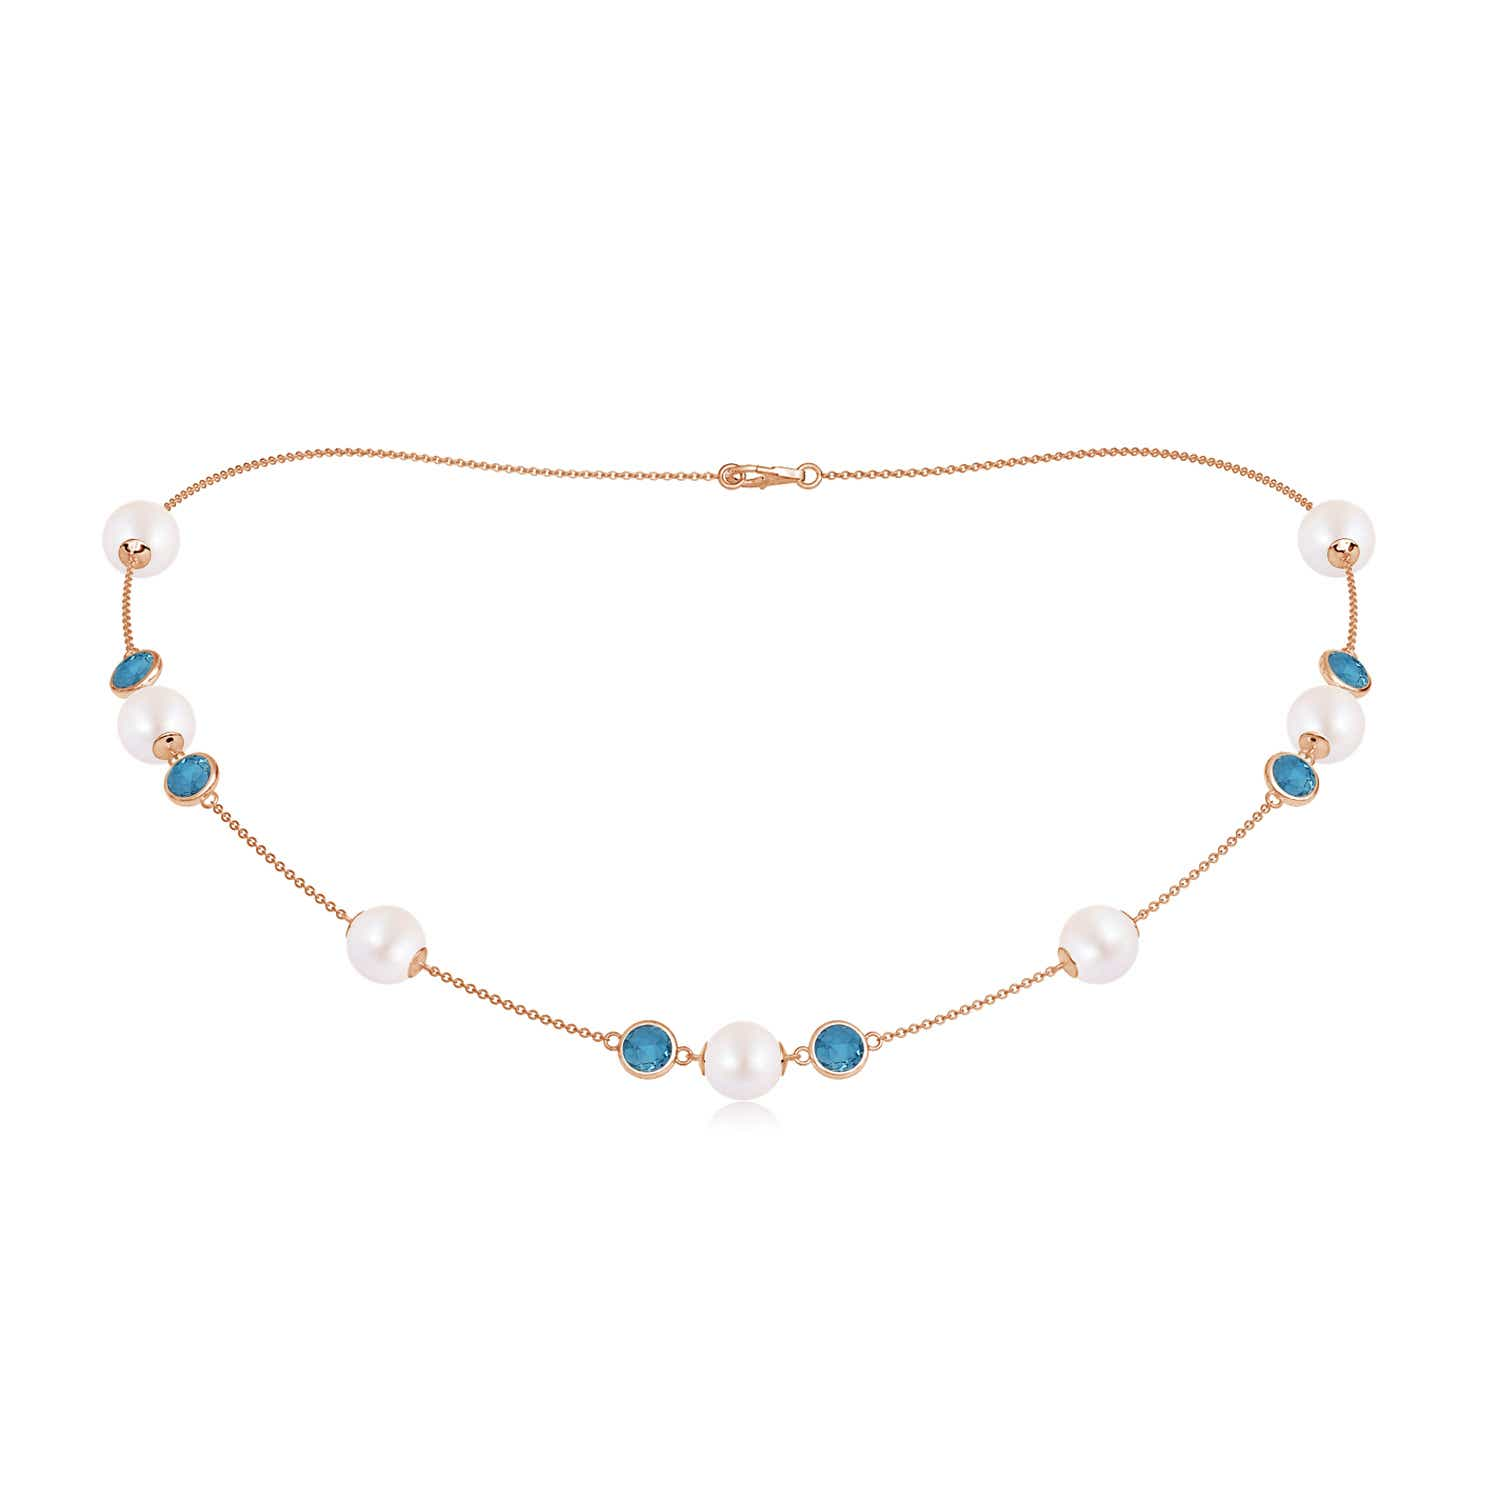 16 Akoya Cultured Pearl & London Blue Topaz Station Necklace